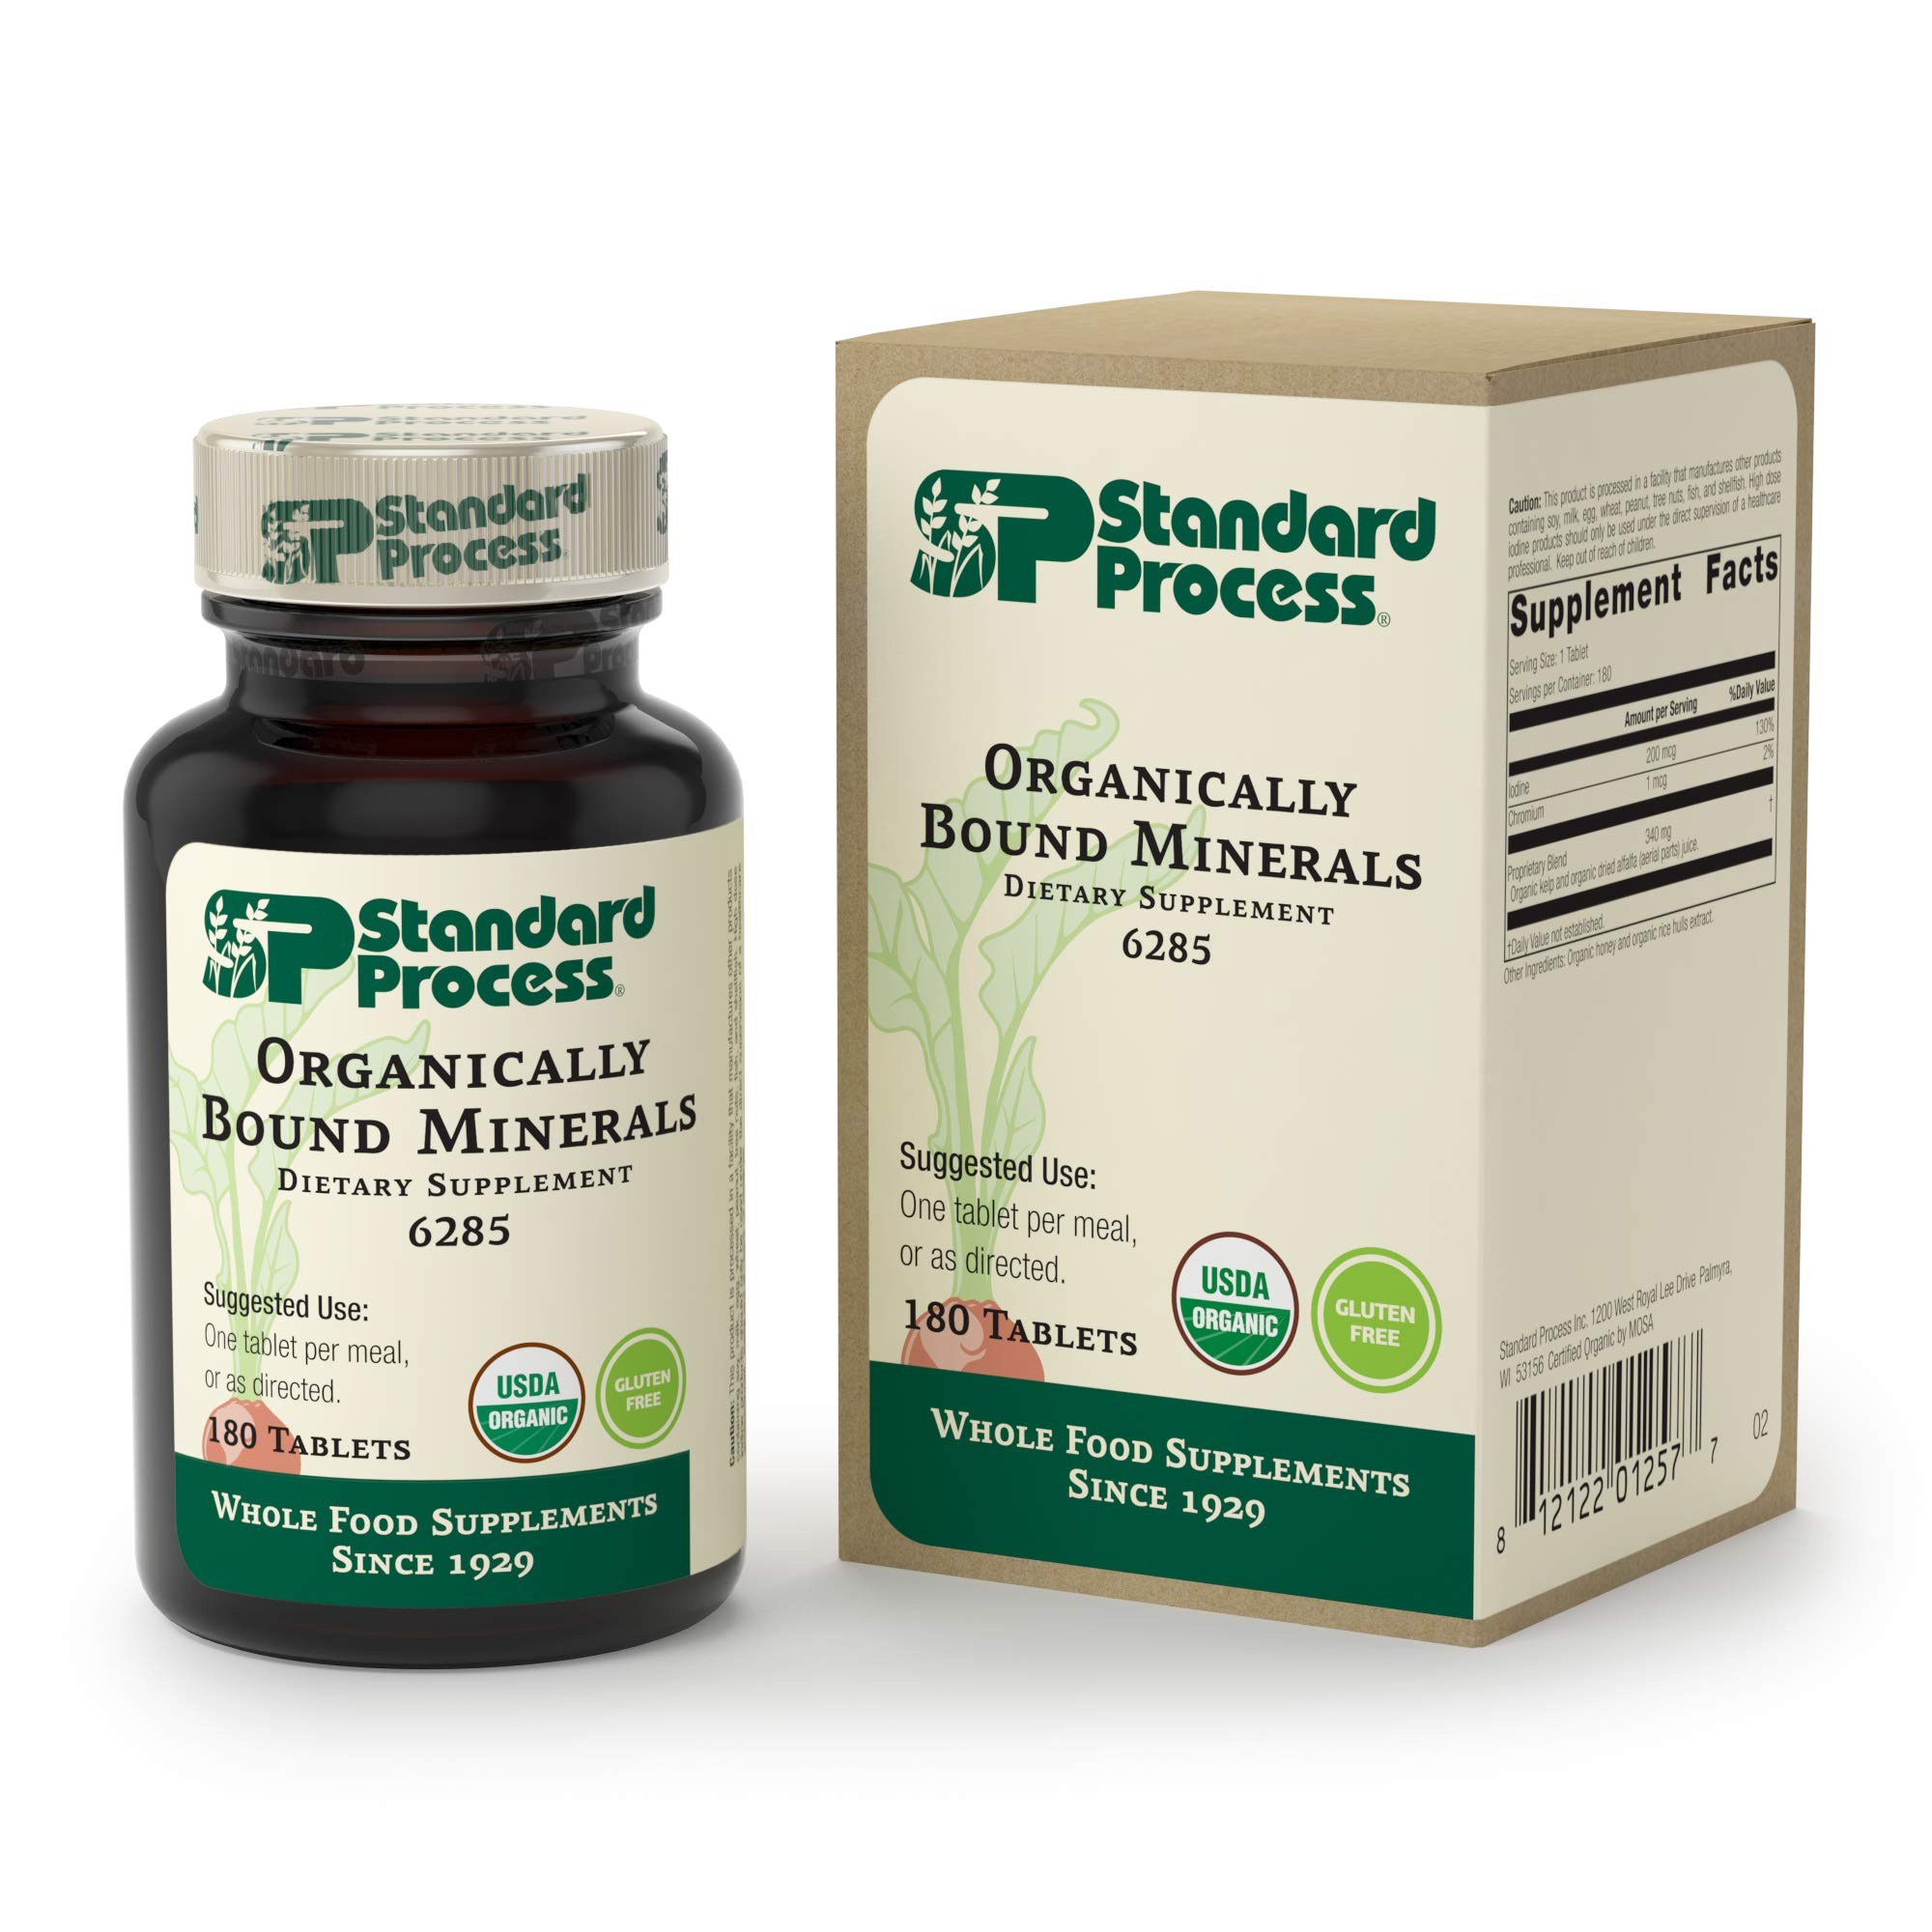 Standard Process - Organically Bound Minerals - Promotes Healthy Connective Tissues and Cellular Energy Production, Healthy Enzyme Function, Gluten Free and Vegetarian - 180 Tablets